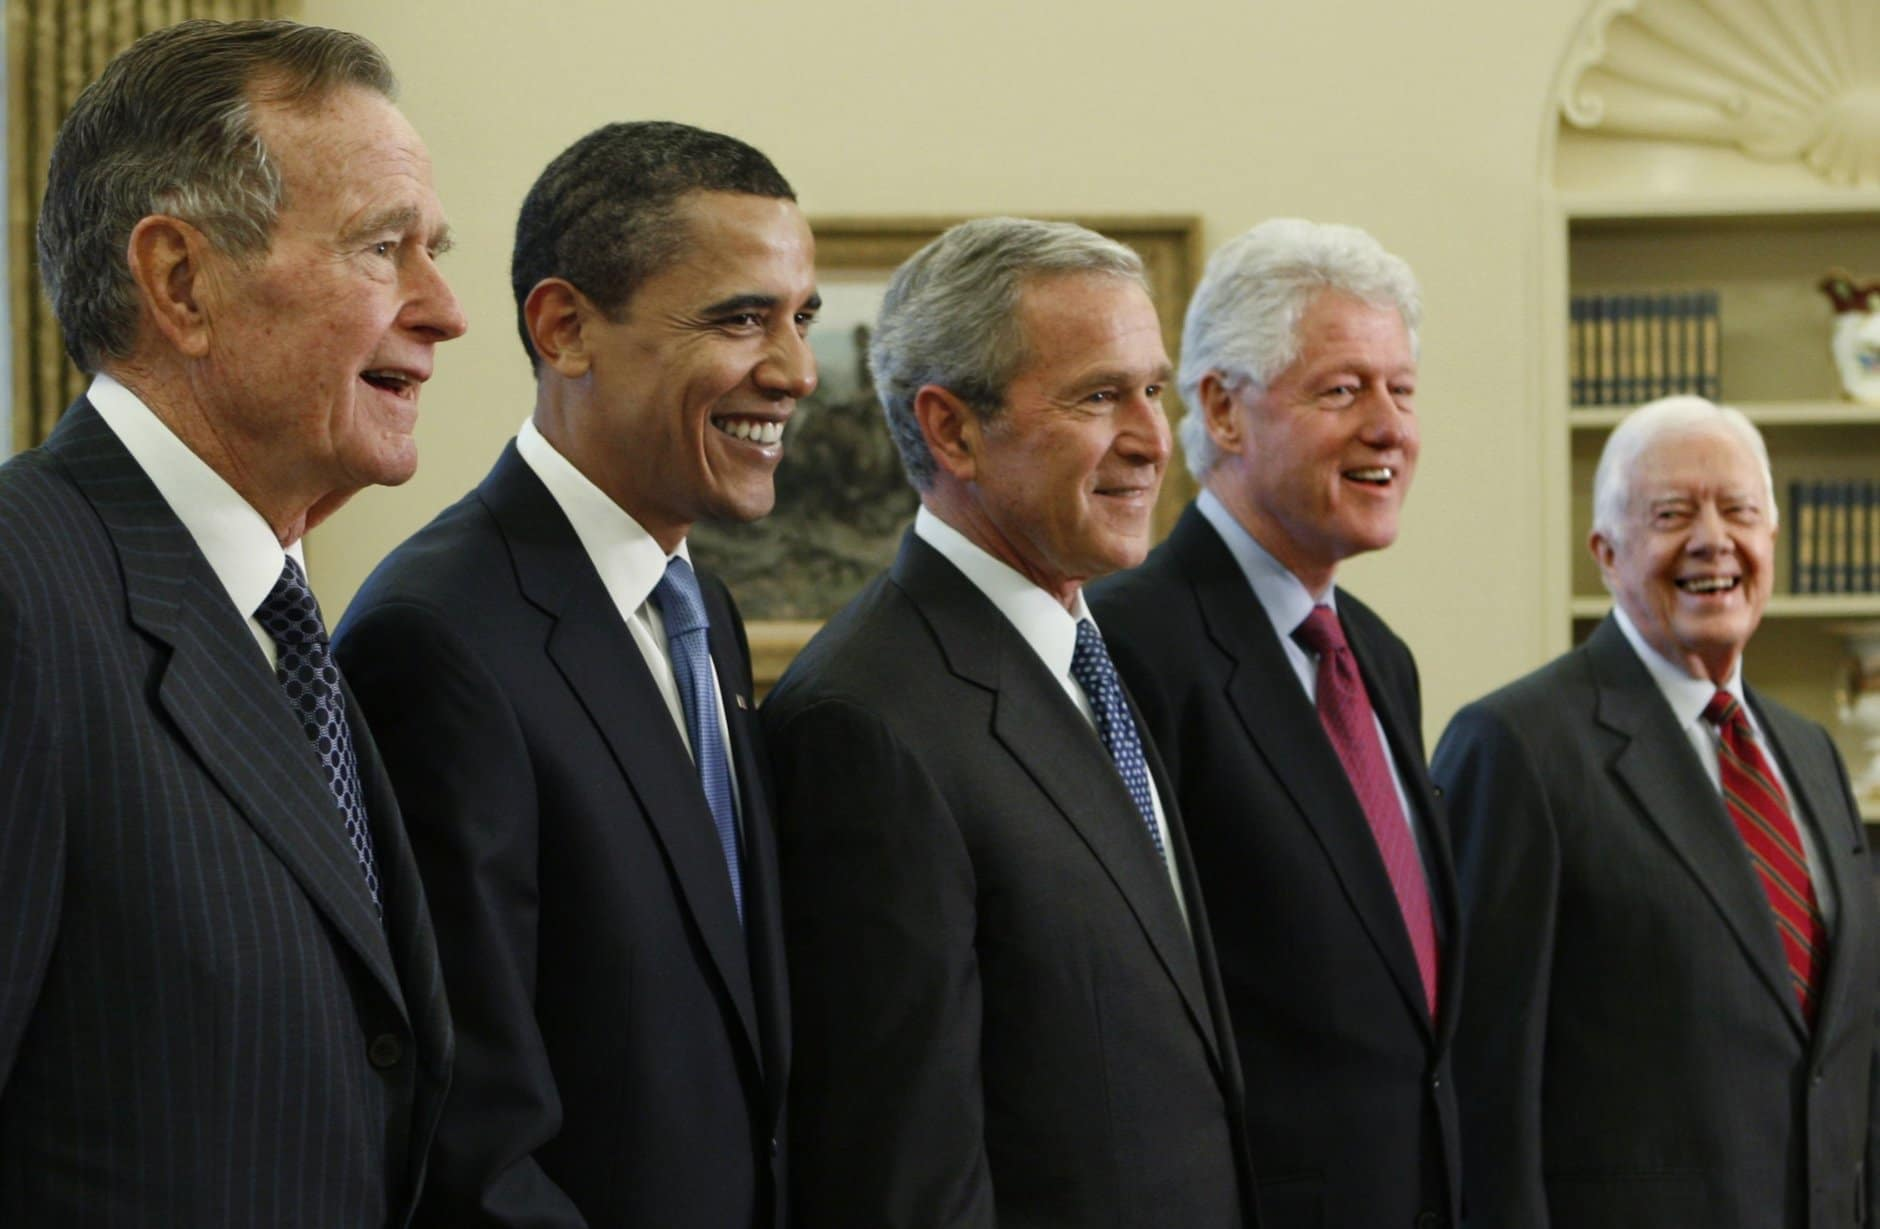 President George W. Bush, center, poses with President-elect Barack Obama, and former presidents, from left, George H.W. Bush, left, Bill Clinton and Jimmy Carter, right, Wednesday, Jan. 7, 2009, in the Oval Office of the White House in Washington. (AP Photo/J. Scott Applewhite)